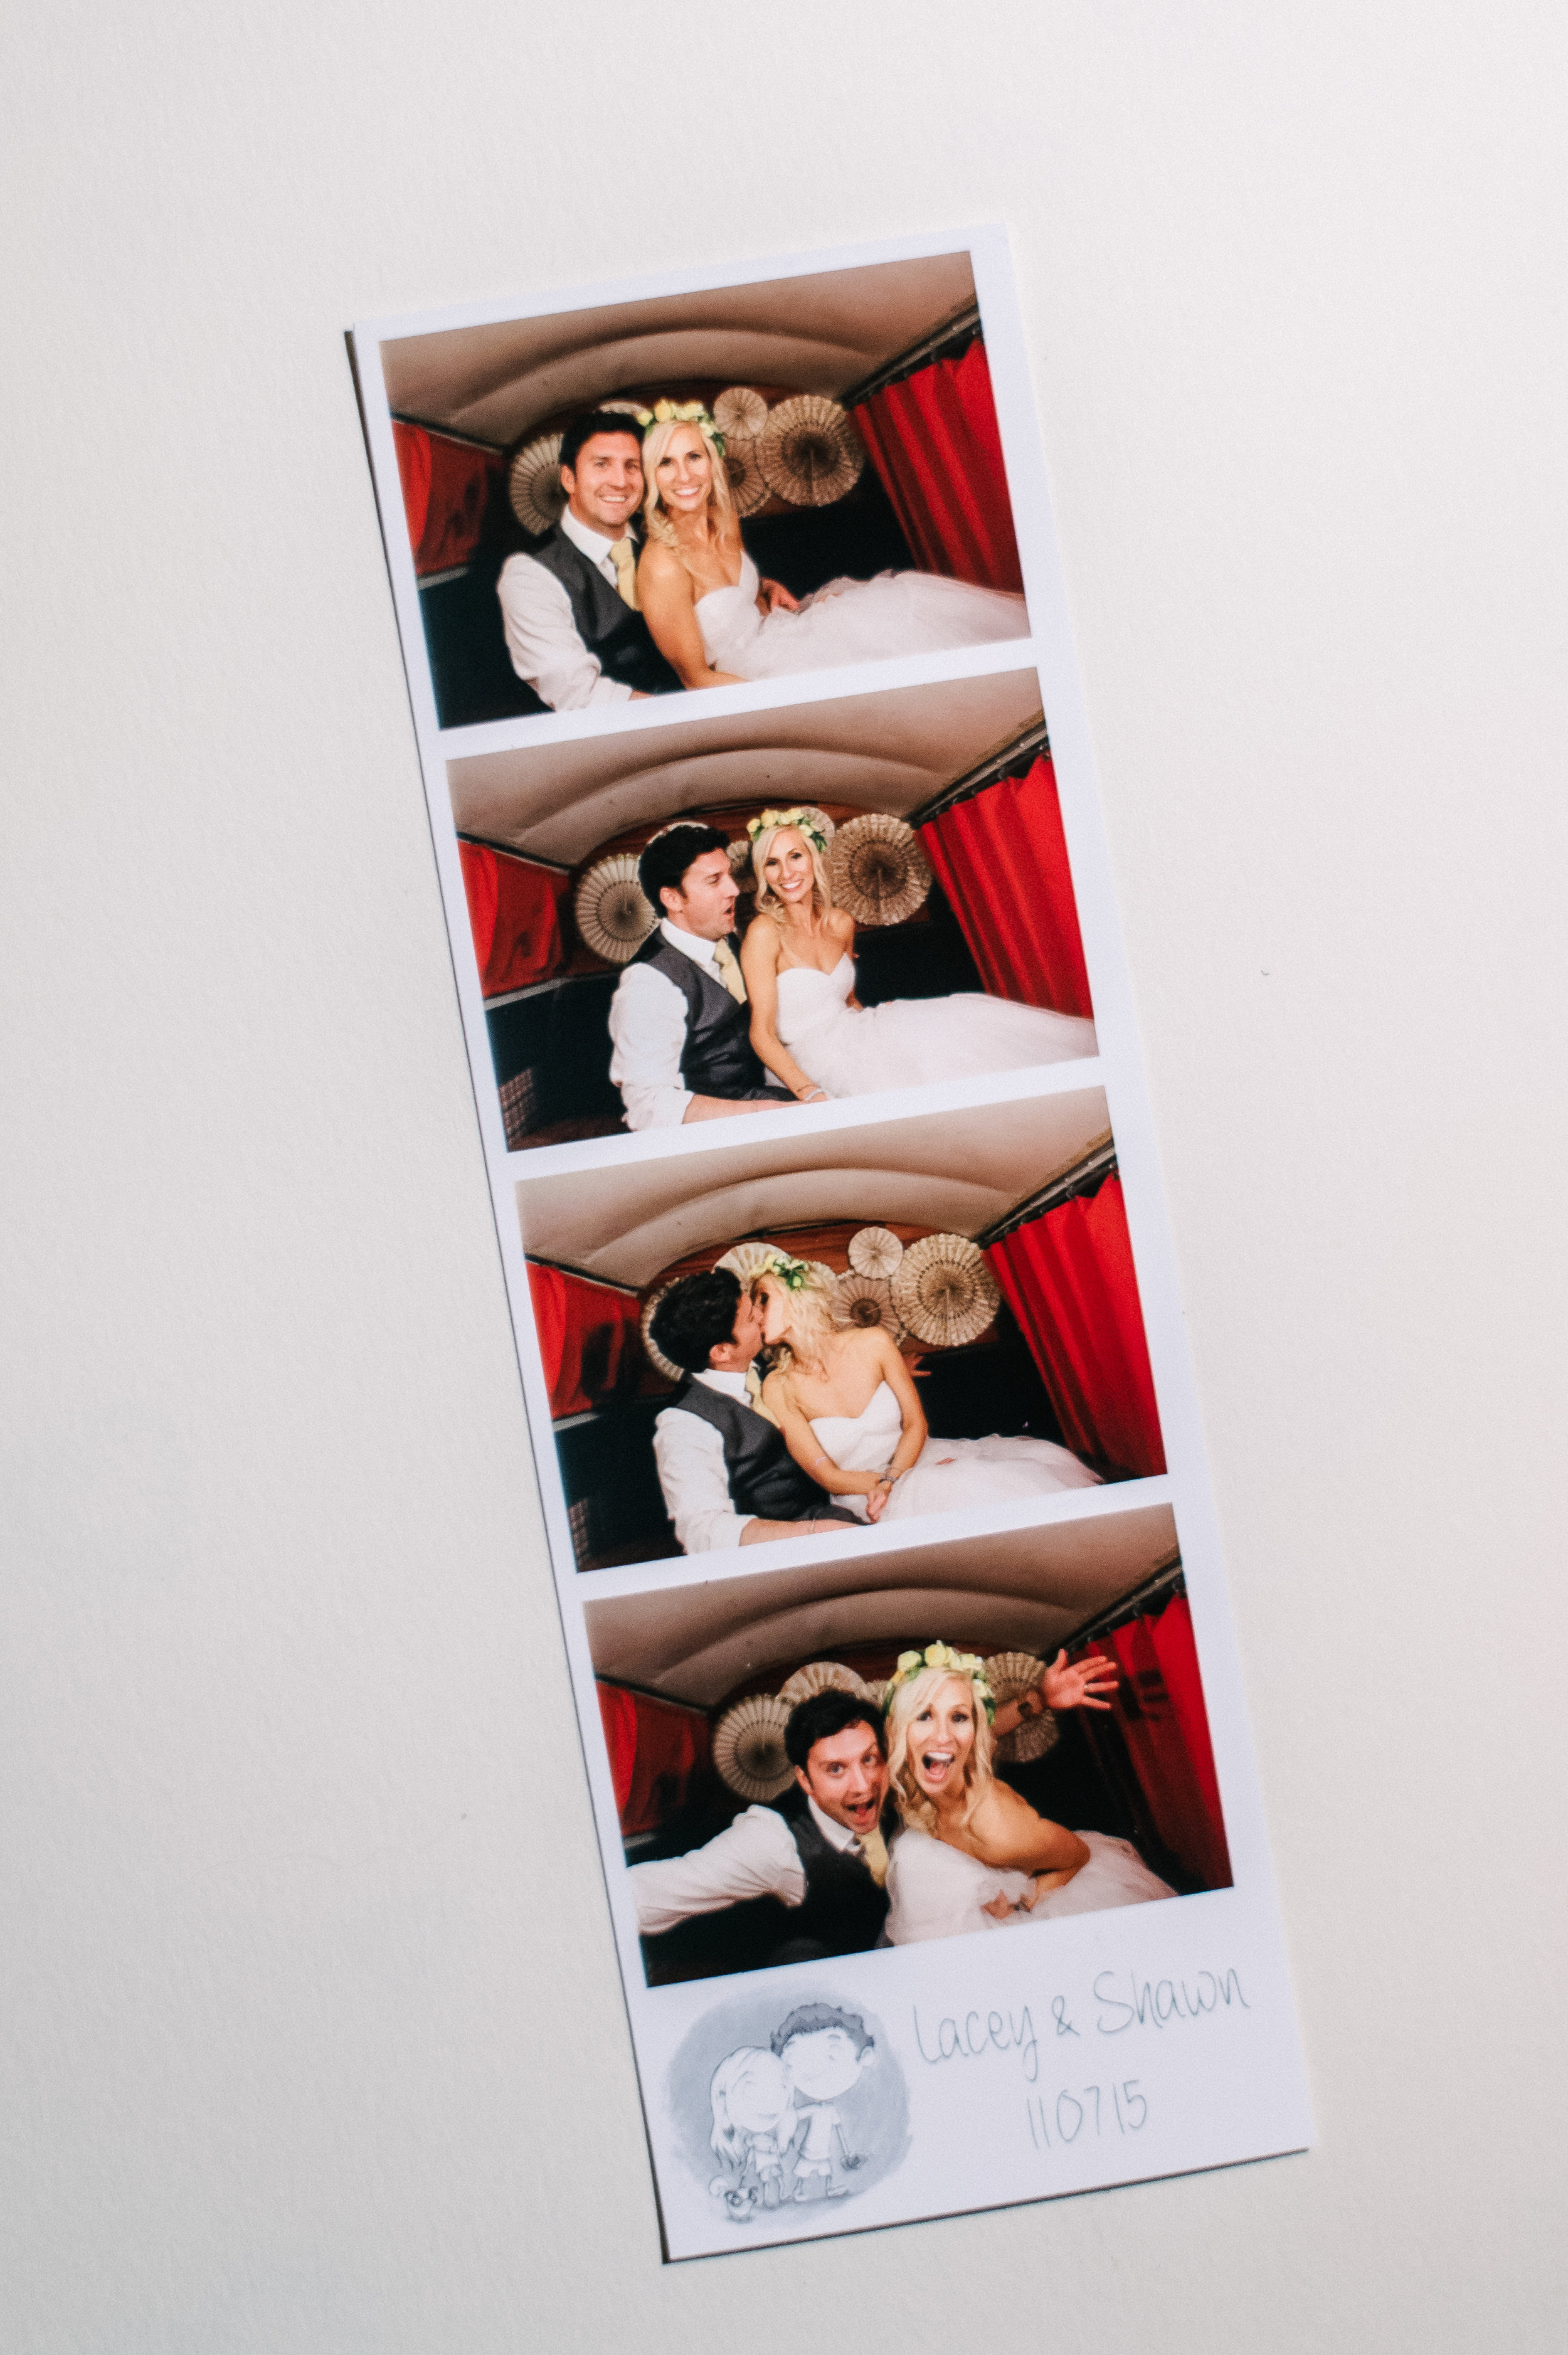 LaceyShawn_Wedding_0916.jpg